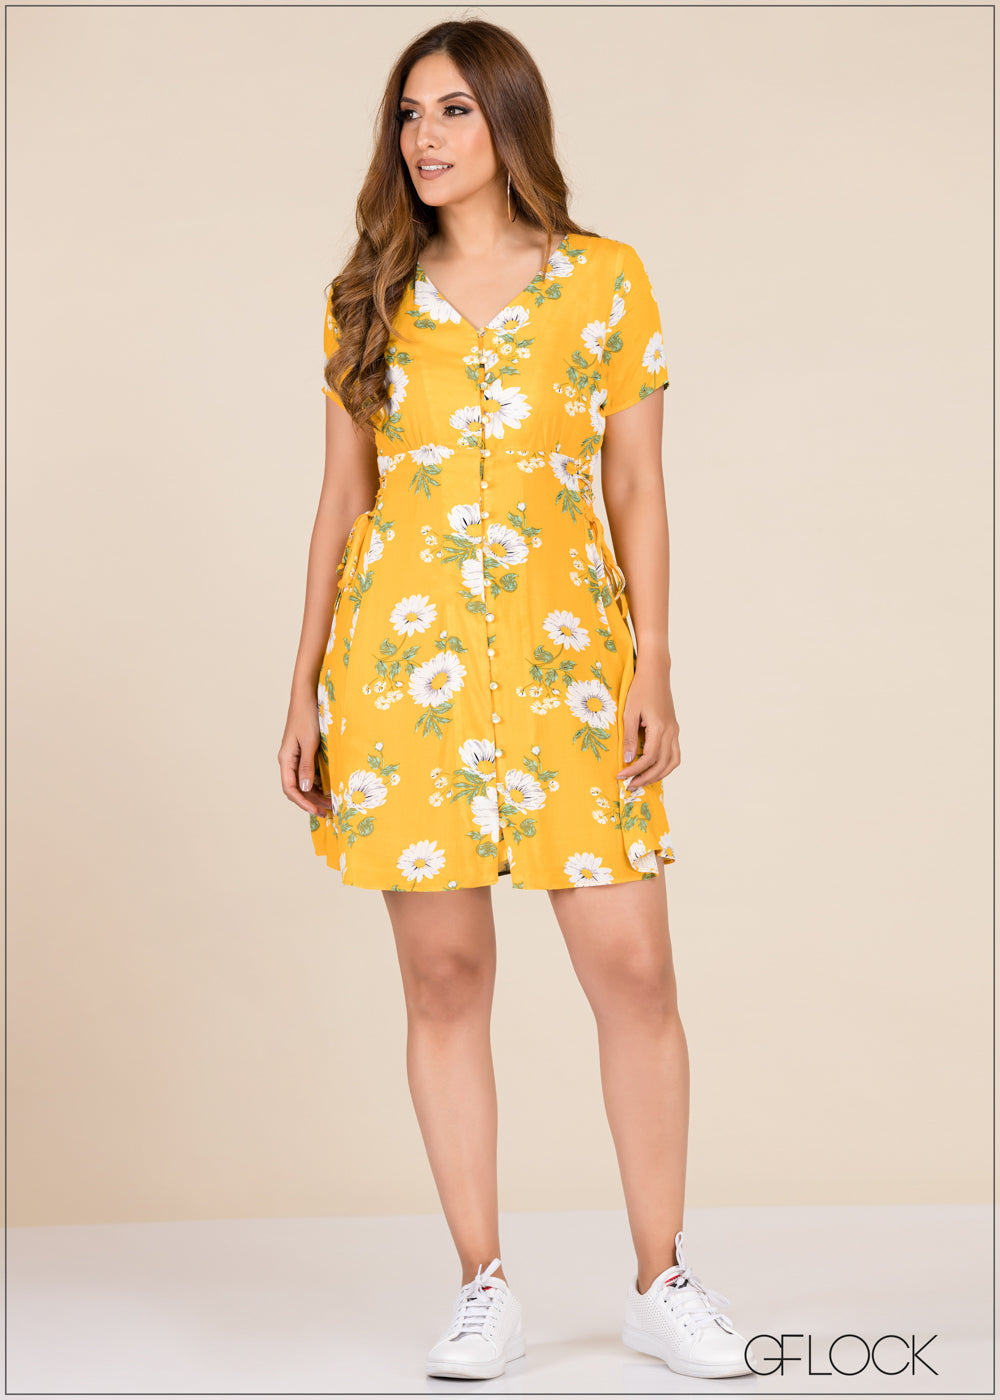 Floral Printed Dress - GFLOCK.LK